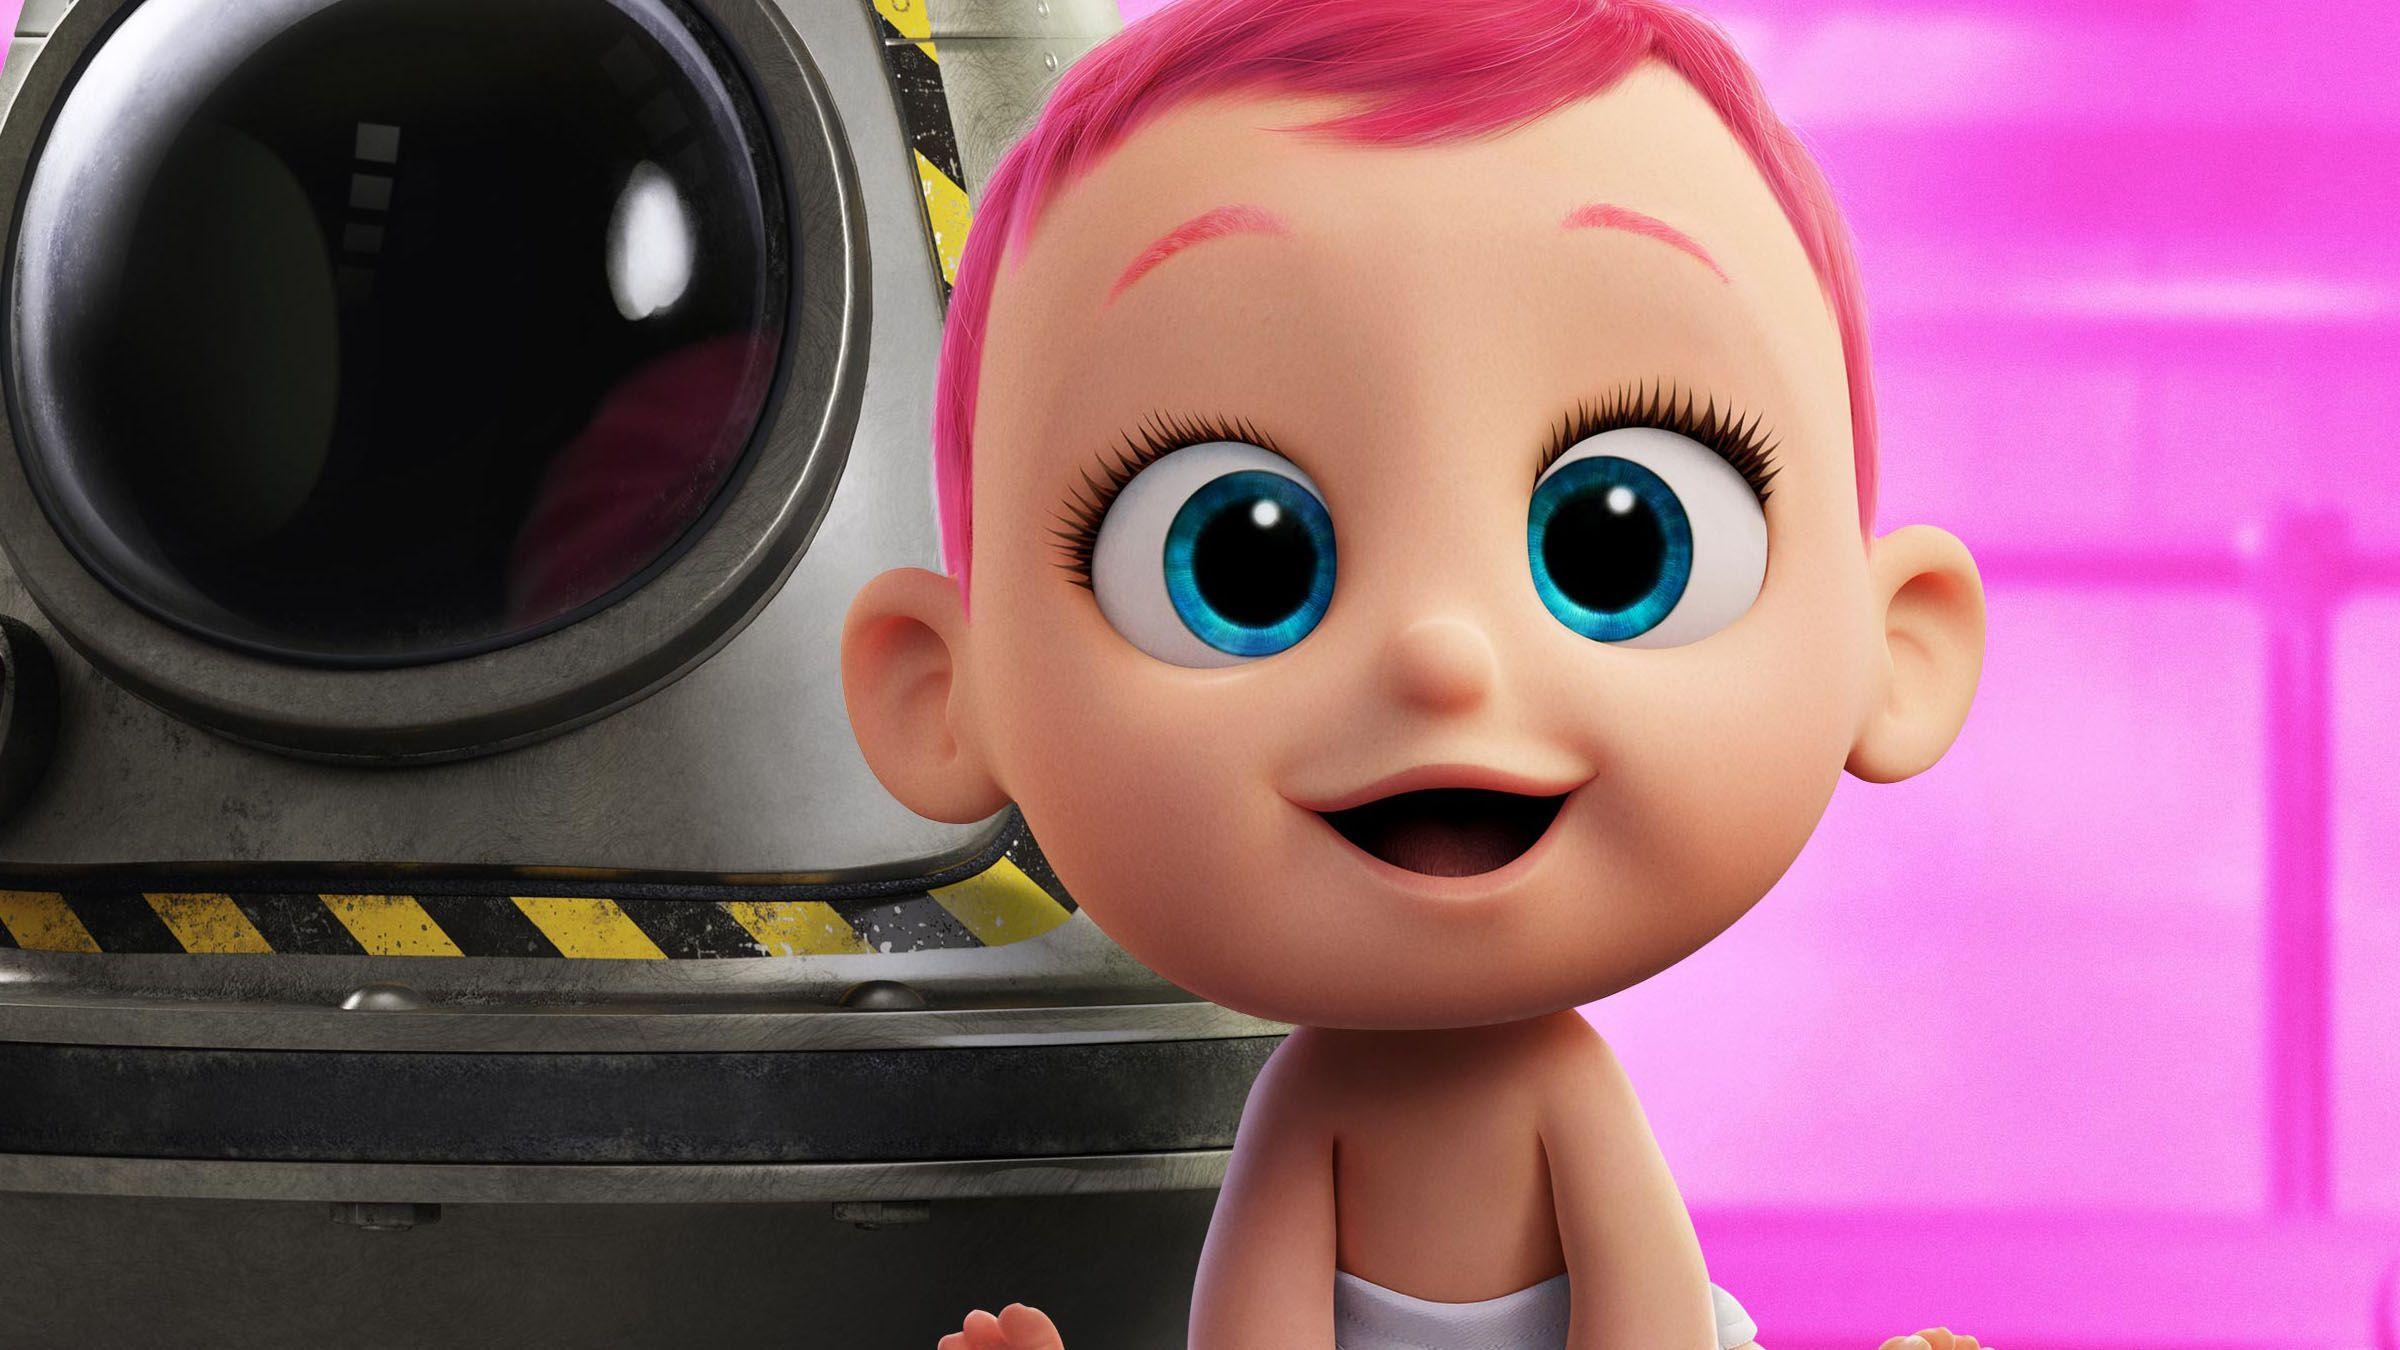 Pin By Raine S. On Cute Kid Movies